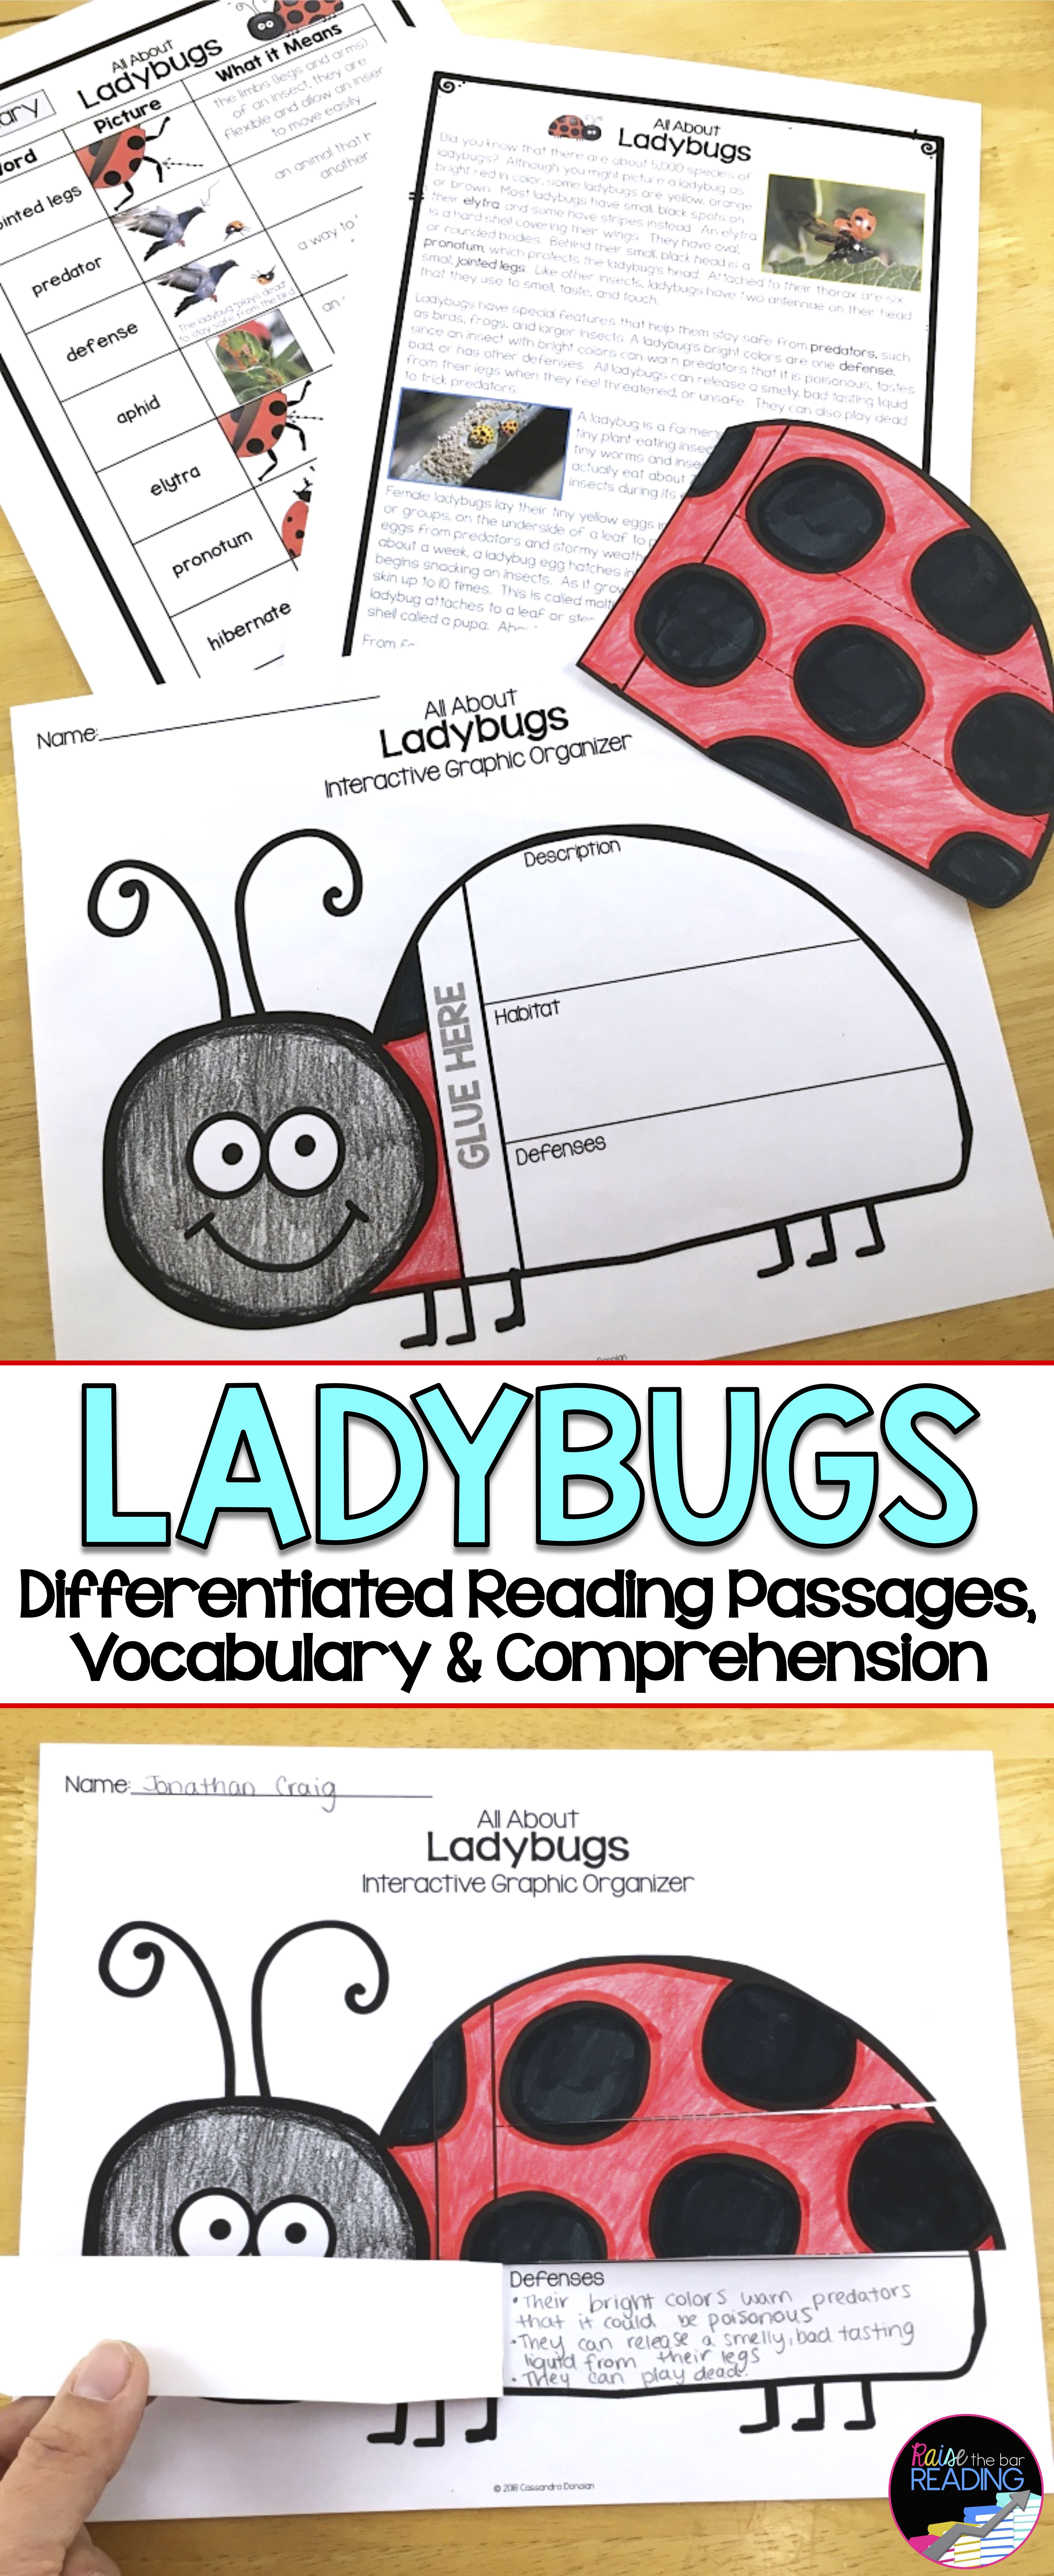 Ladybugs Differentiated Reading Passages Grades 2 5 Perfect For Your Insects Unit G Differentiated Reading Passages Differentiated Reading Reading Passages [ 11000 x 4500 Pixel ]